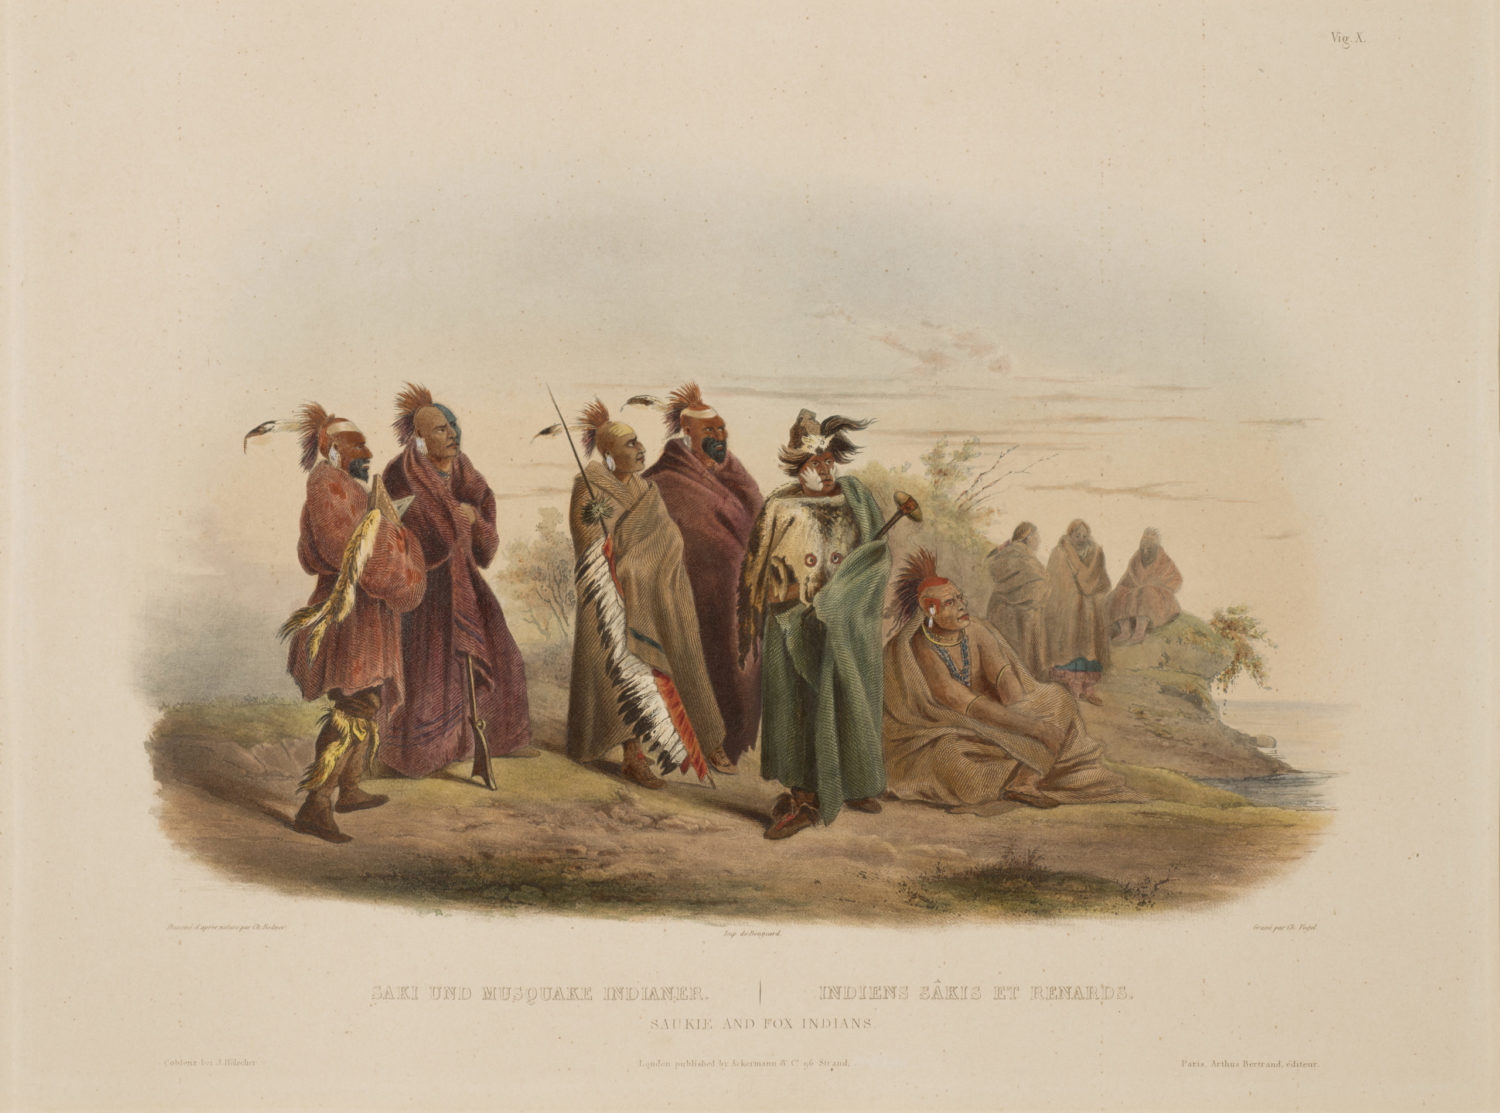 Saukie and Fox Indians